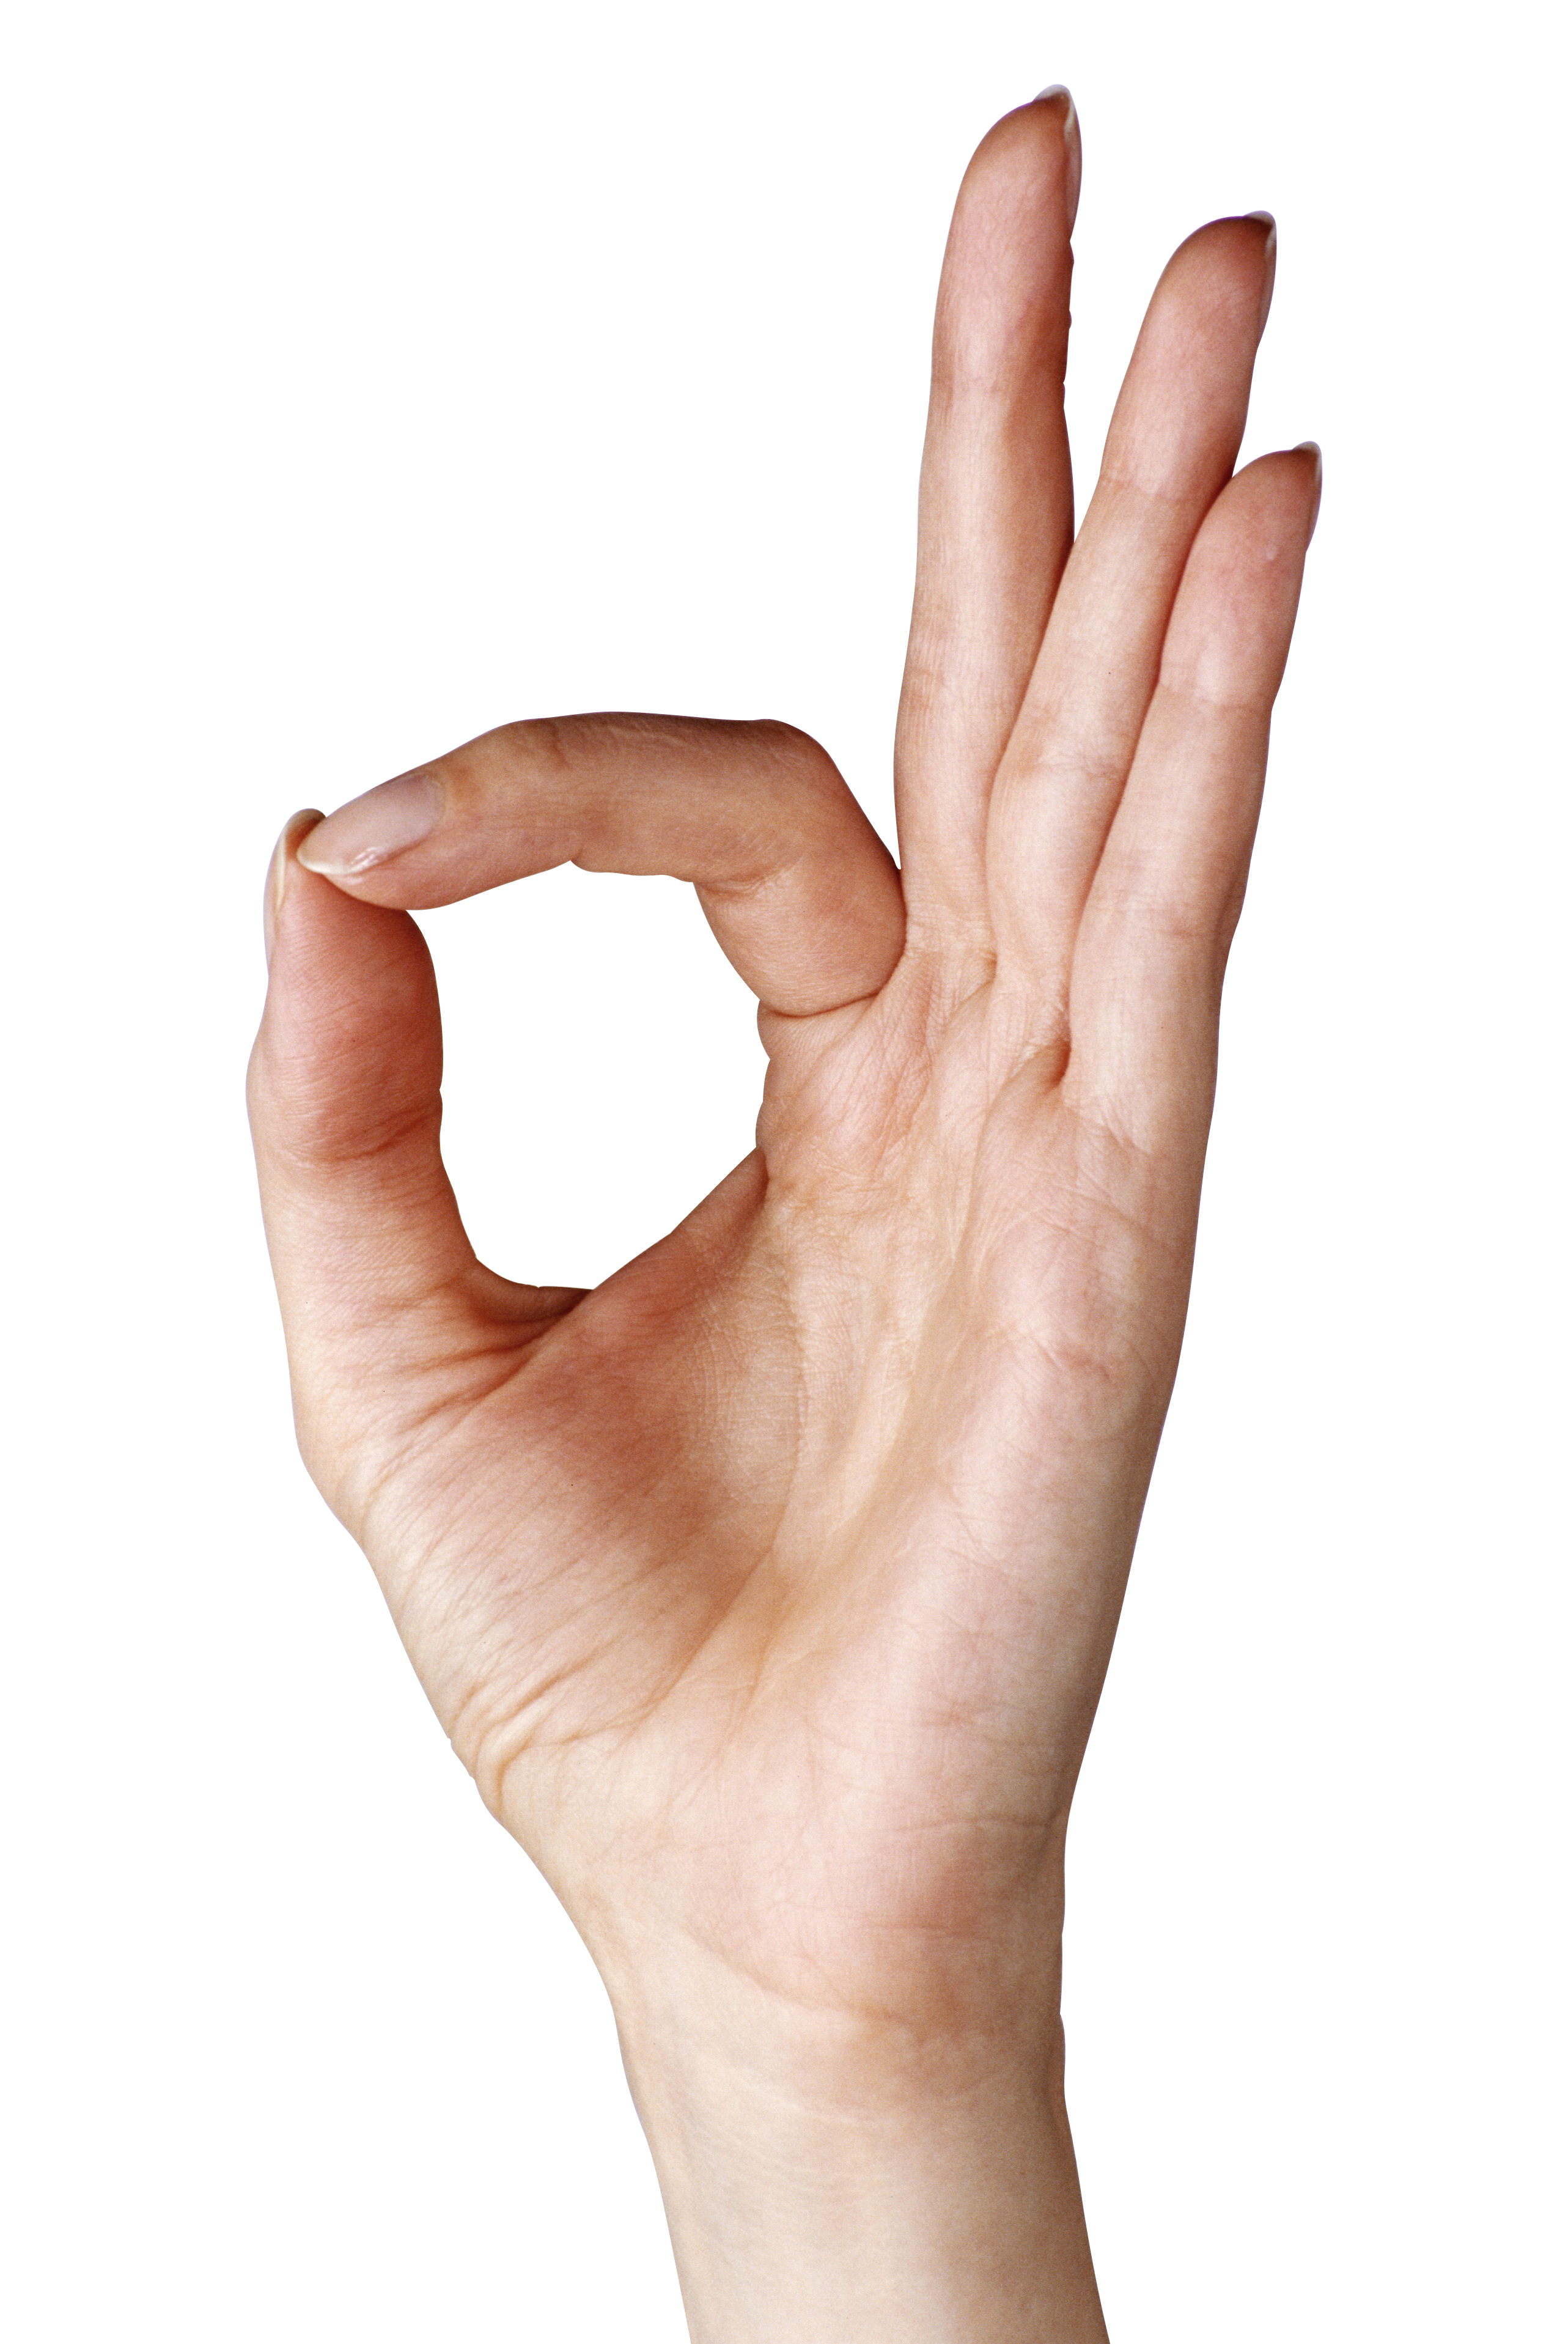 Hand Gesture clipart okay Gallery  Yopriceville Showing full